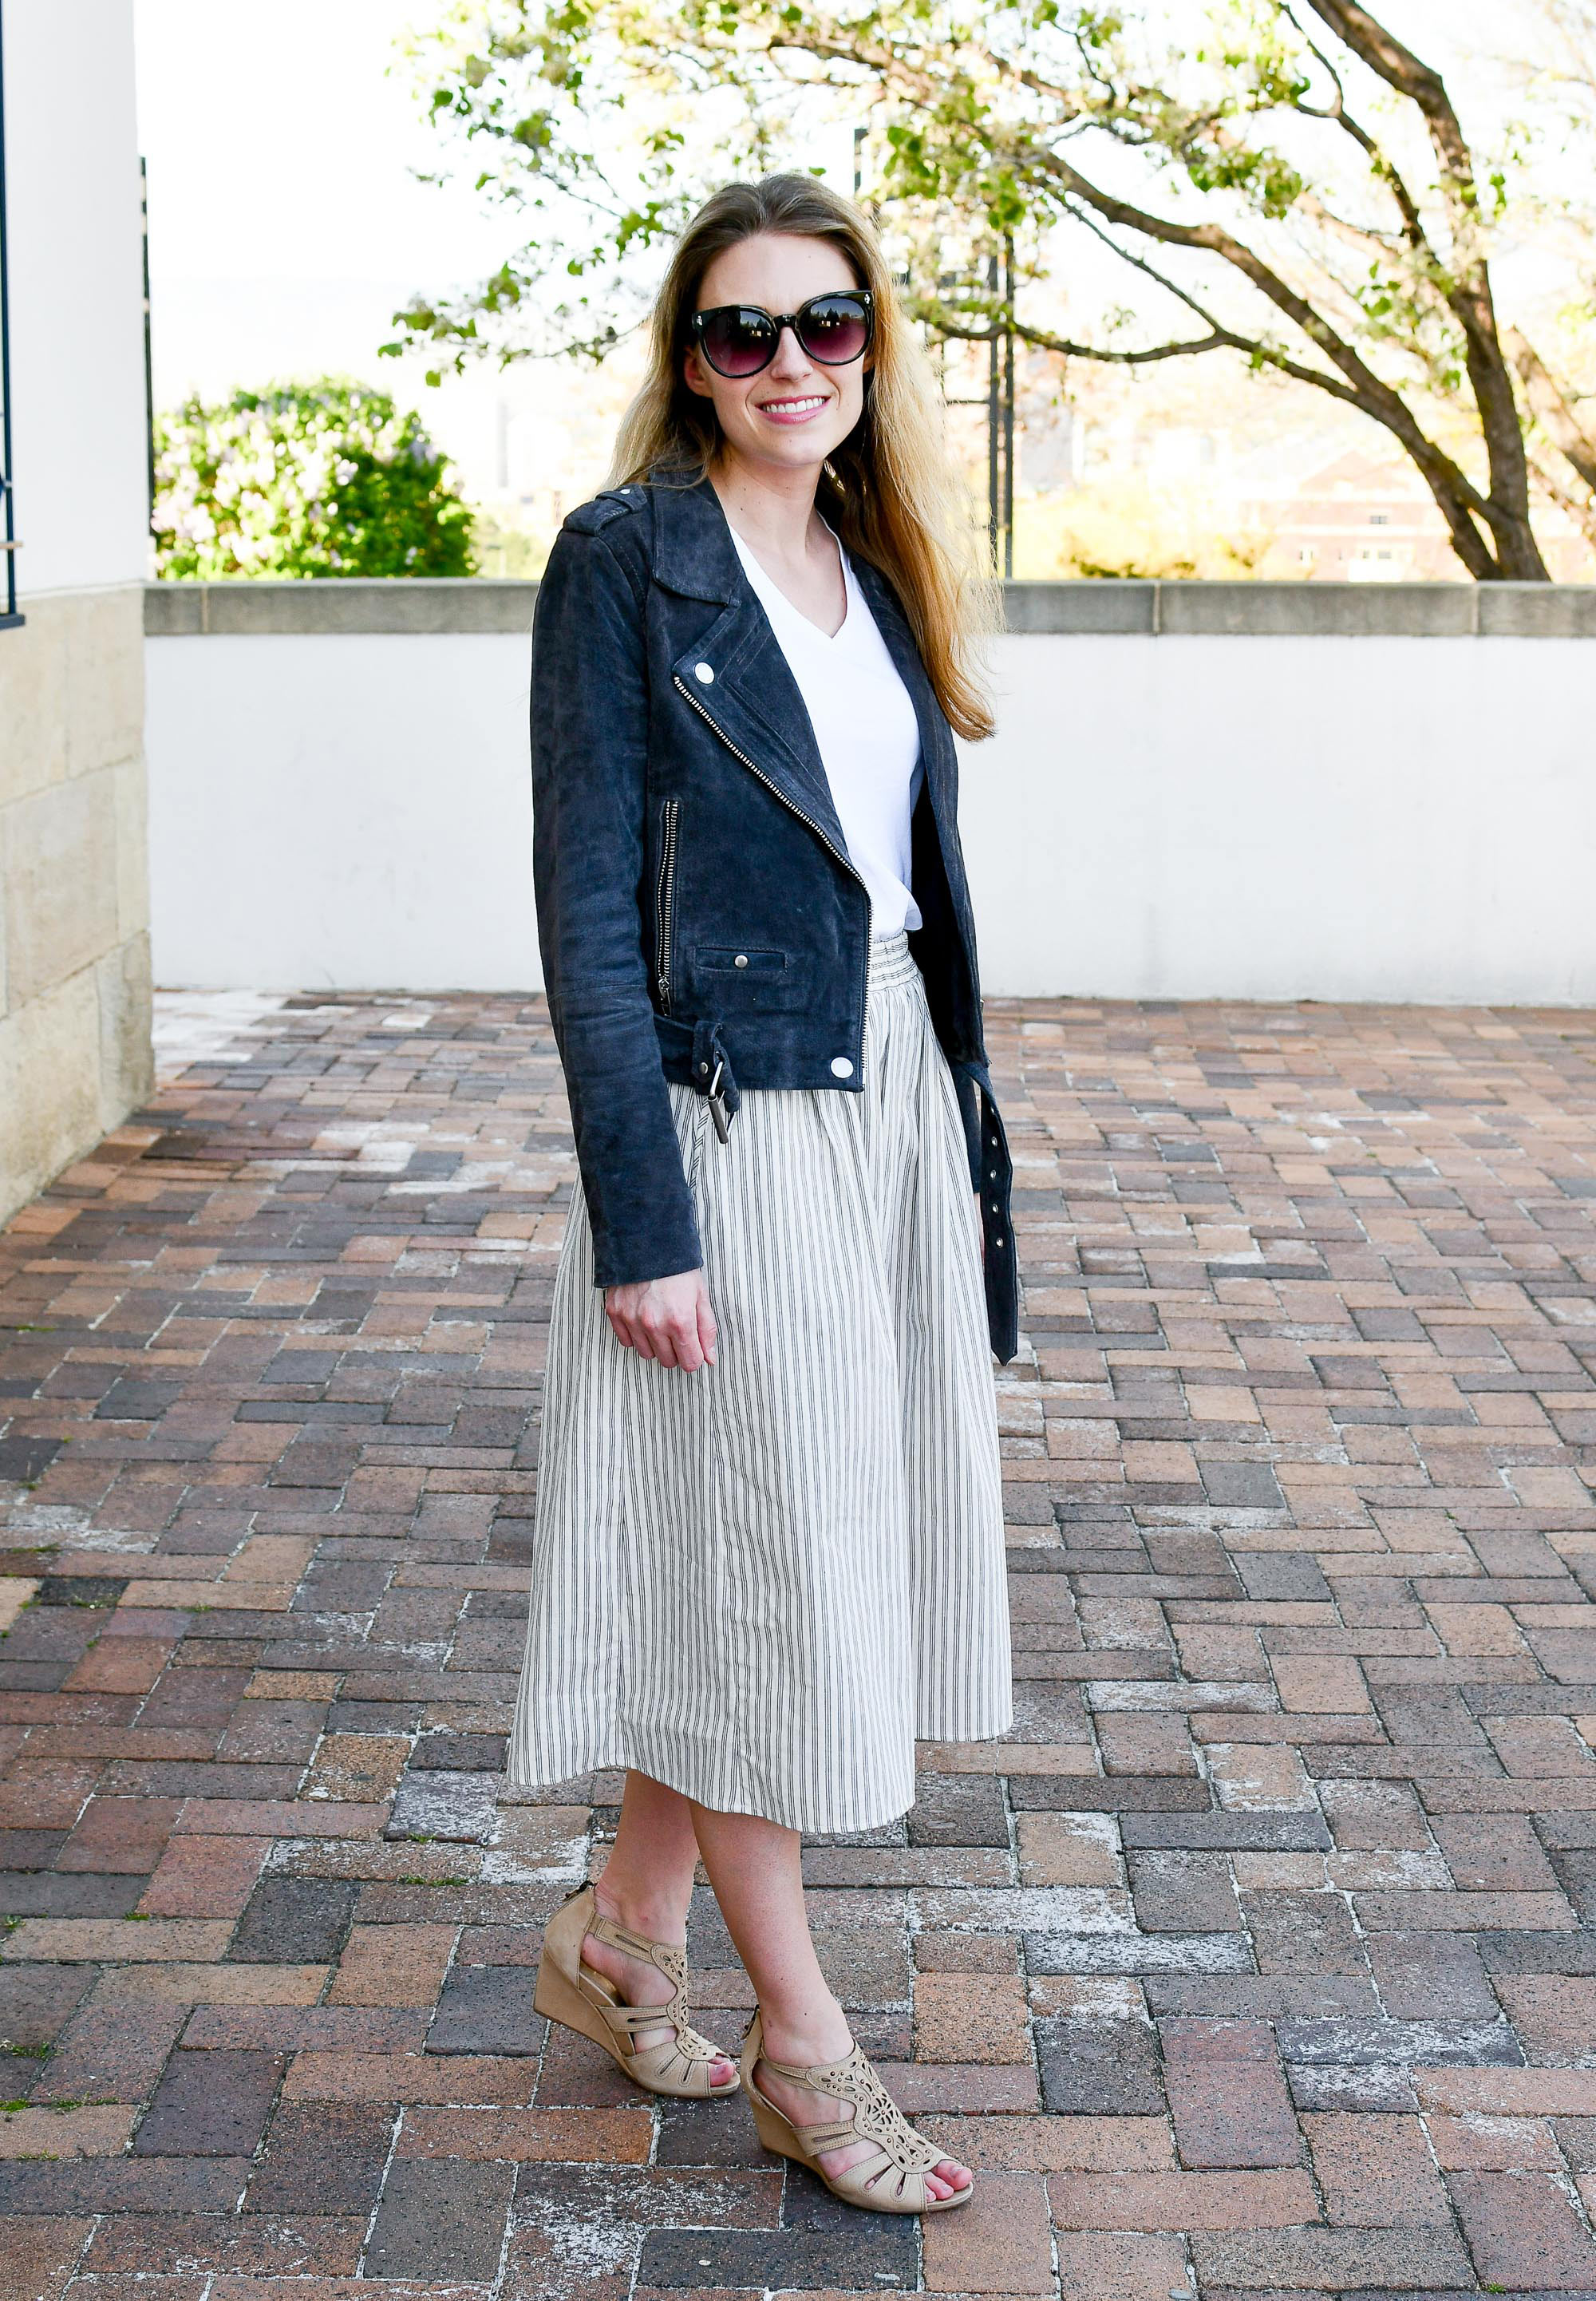 Earthies Saletto sandals spring outfit with midi skirt — Cotton Cashmere Cat Hair